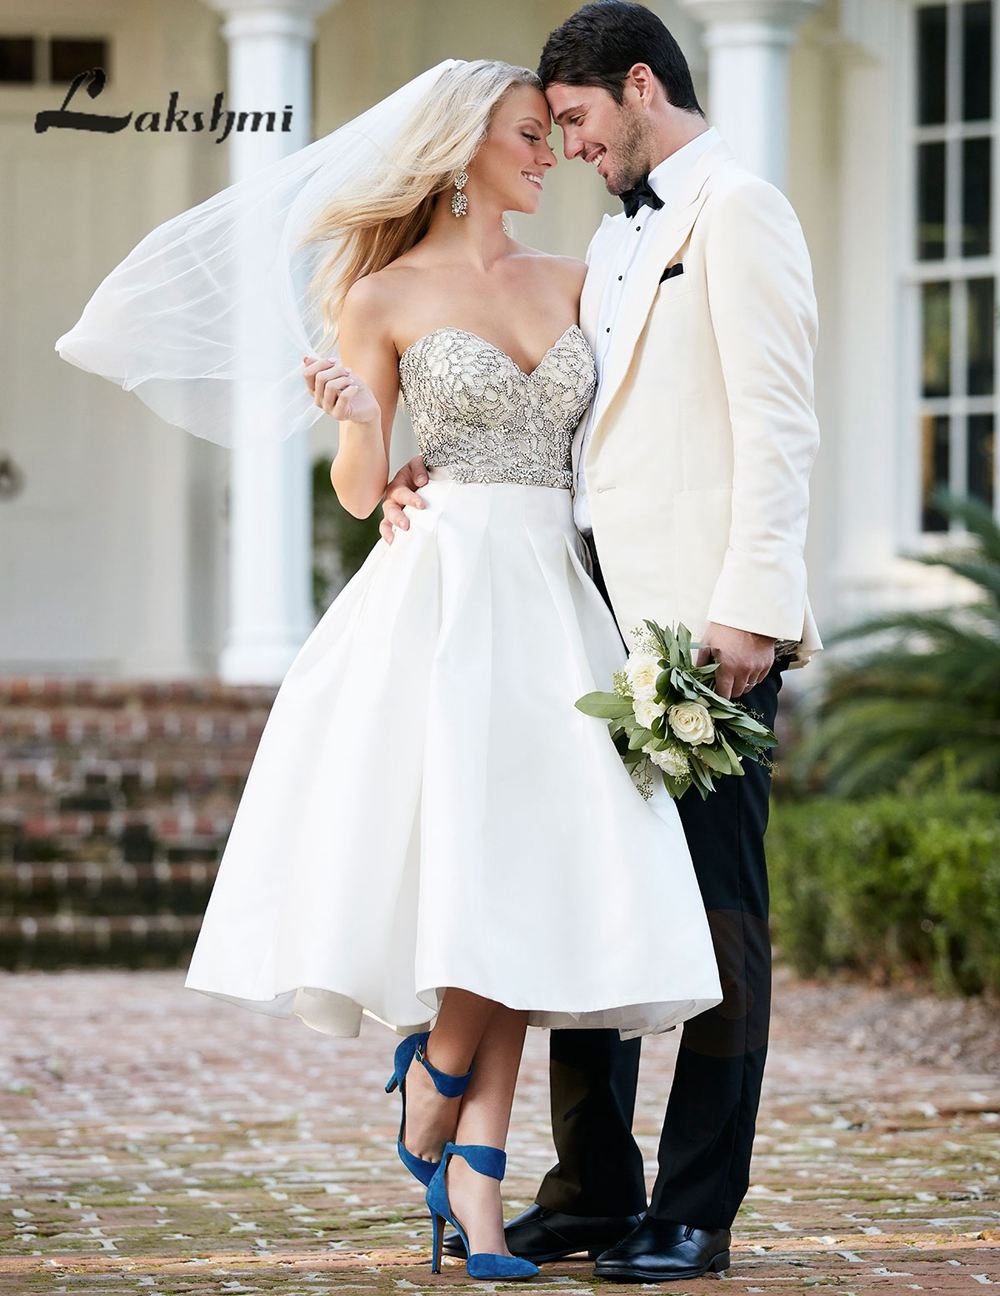 long wedding reception dresses for the bride reception wedding dress Long Wedding Reception Dresses For The Bride 99